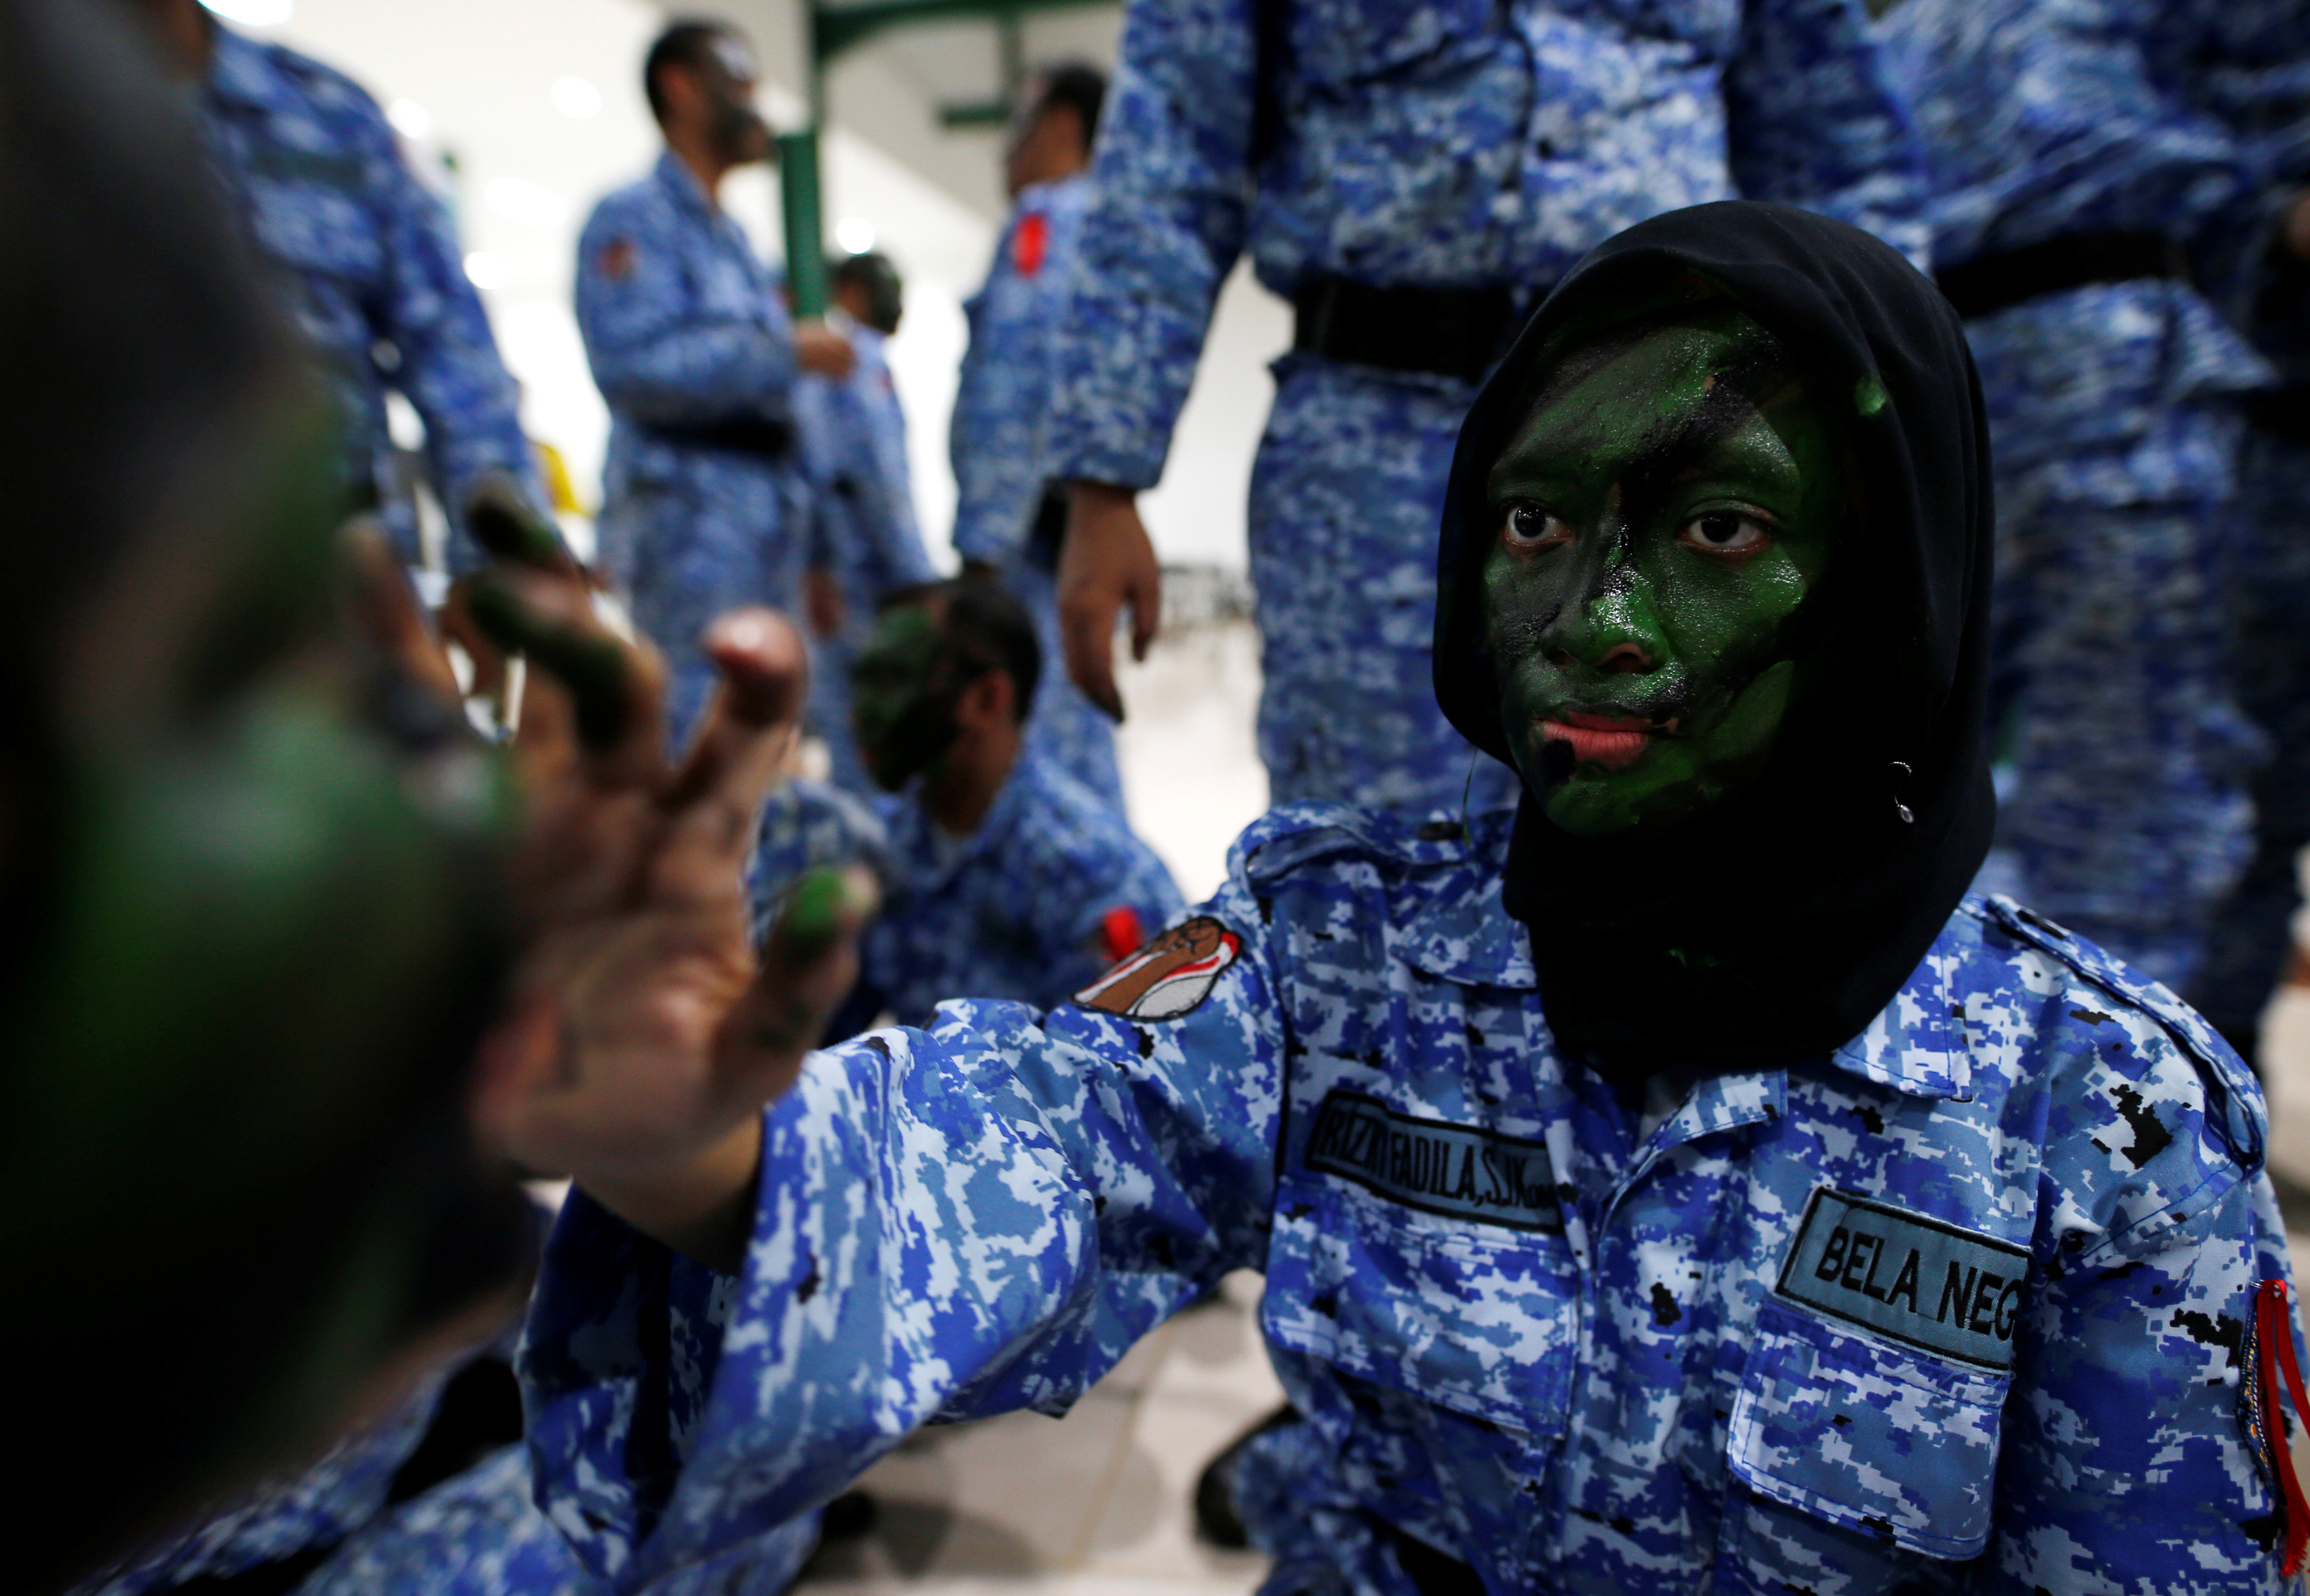 The Wider Image: Defending the nation against perceived threats